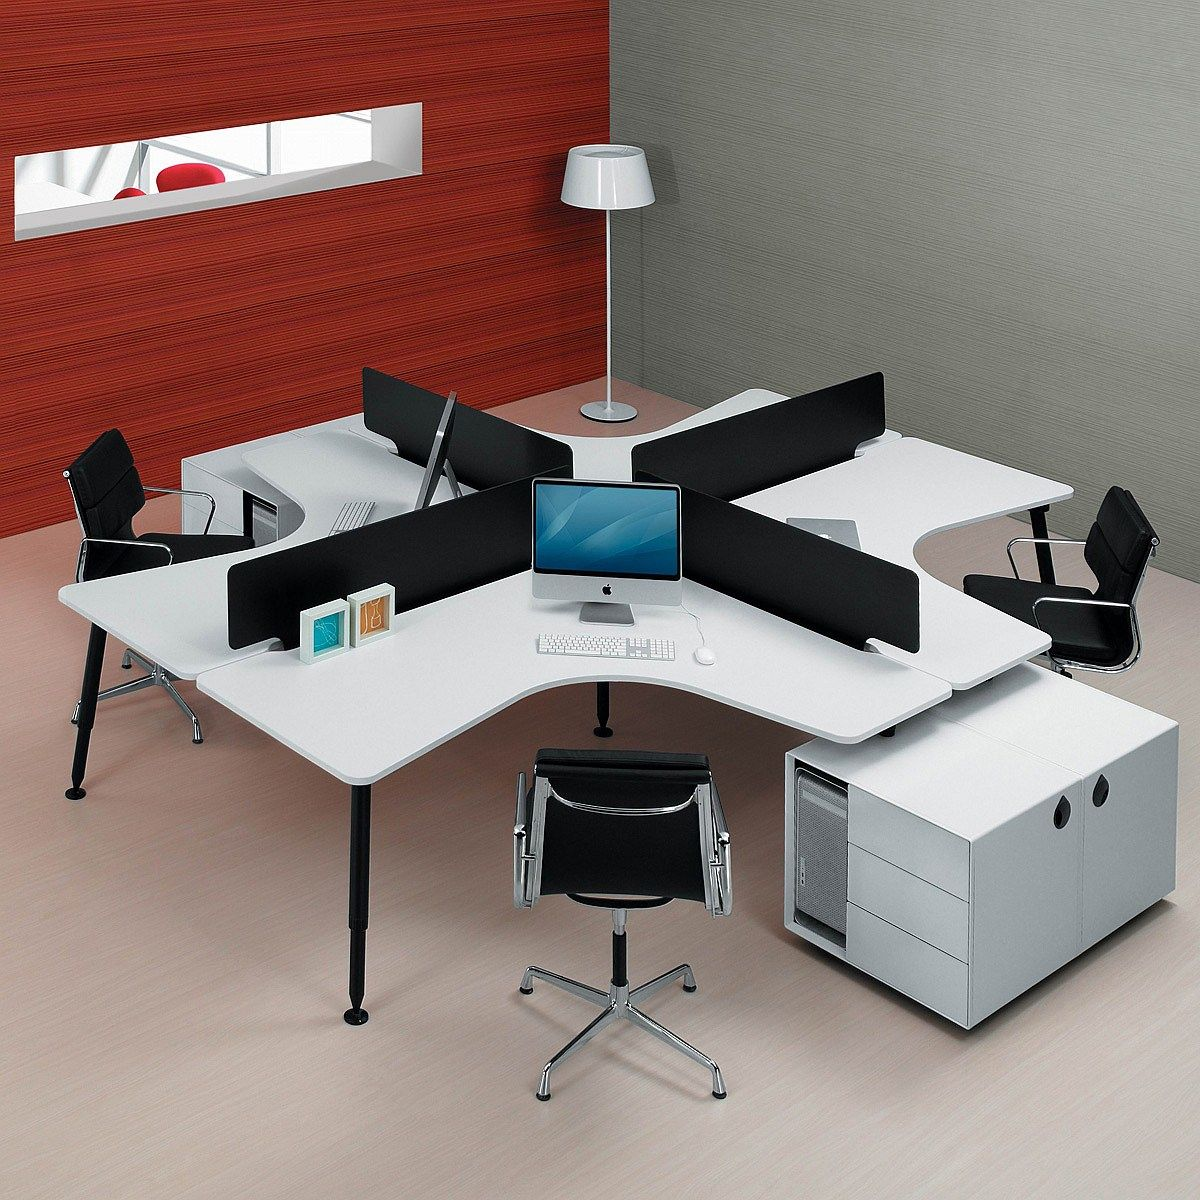 Office Furniture Online, Open Office Design